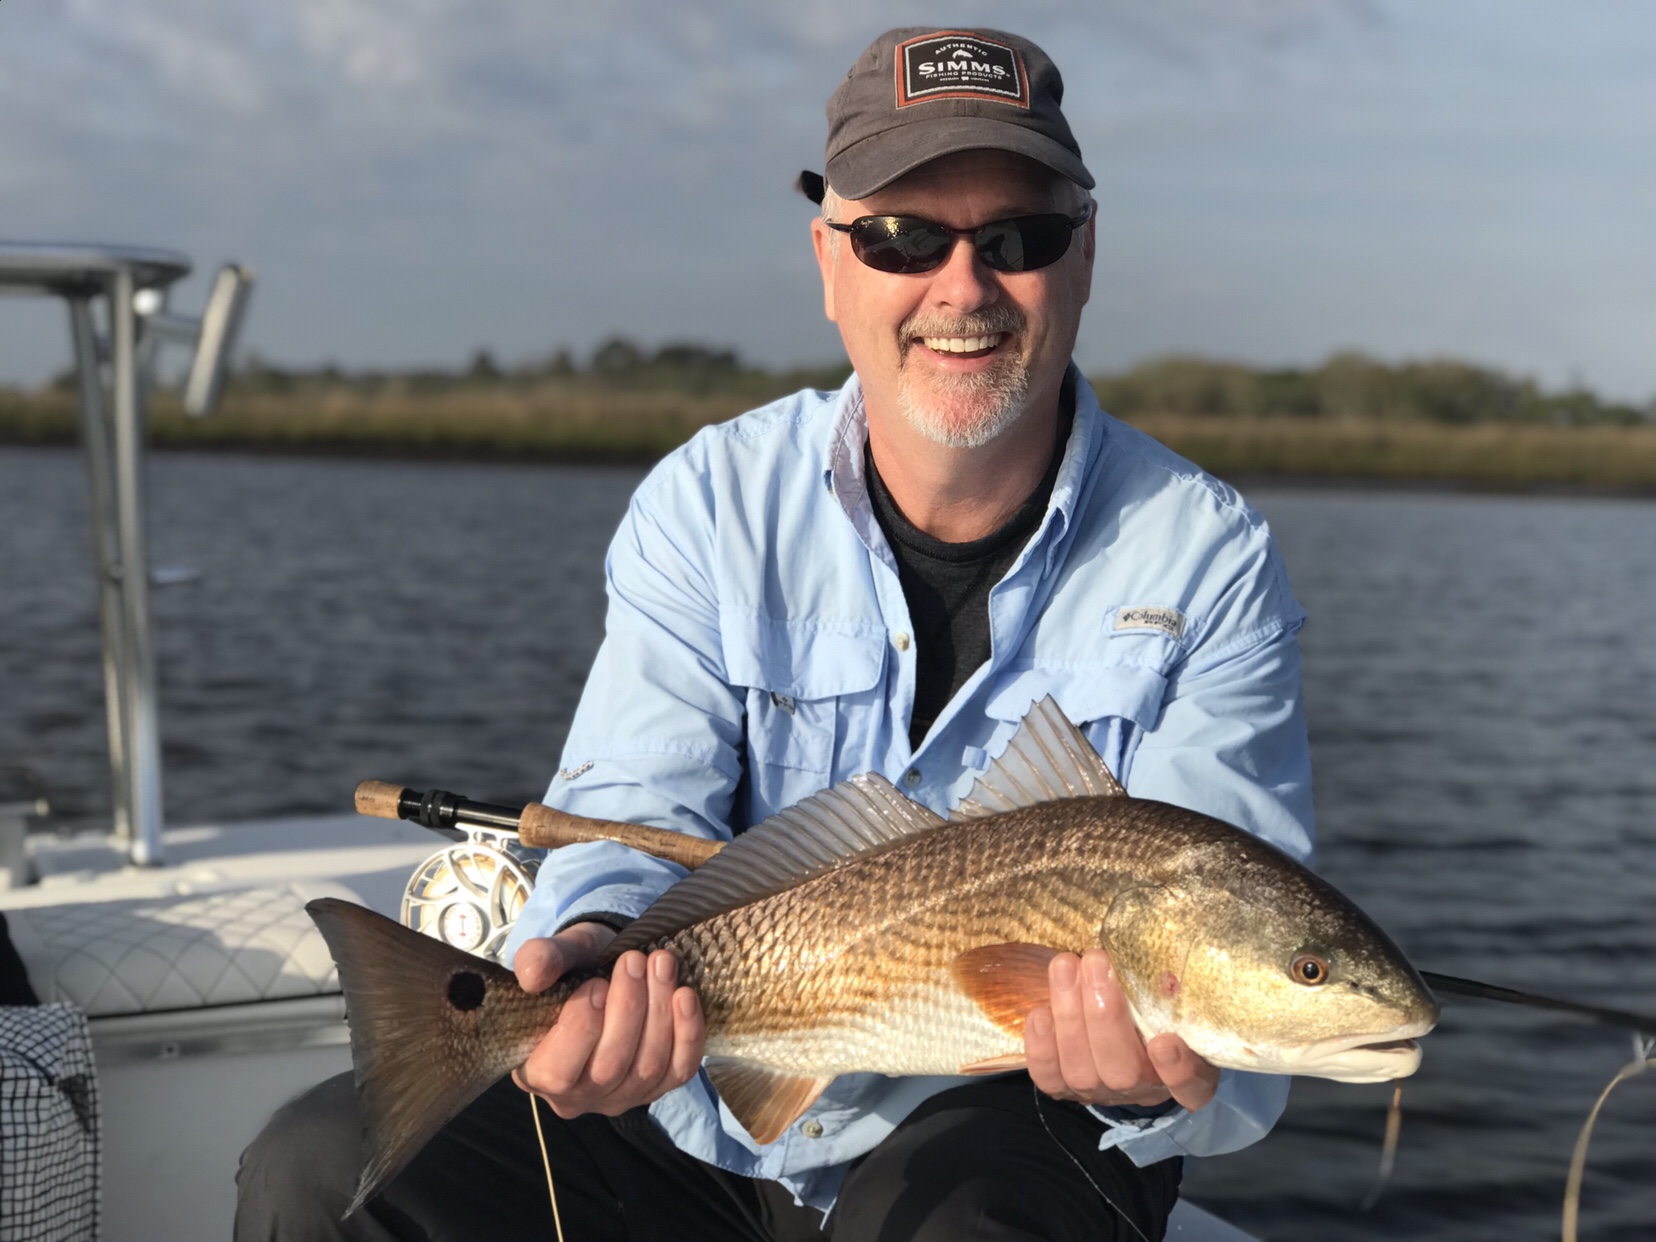 Low tide fishing With Joe Jacksonville Marsh Florida Red fish caught on fly